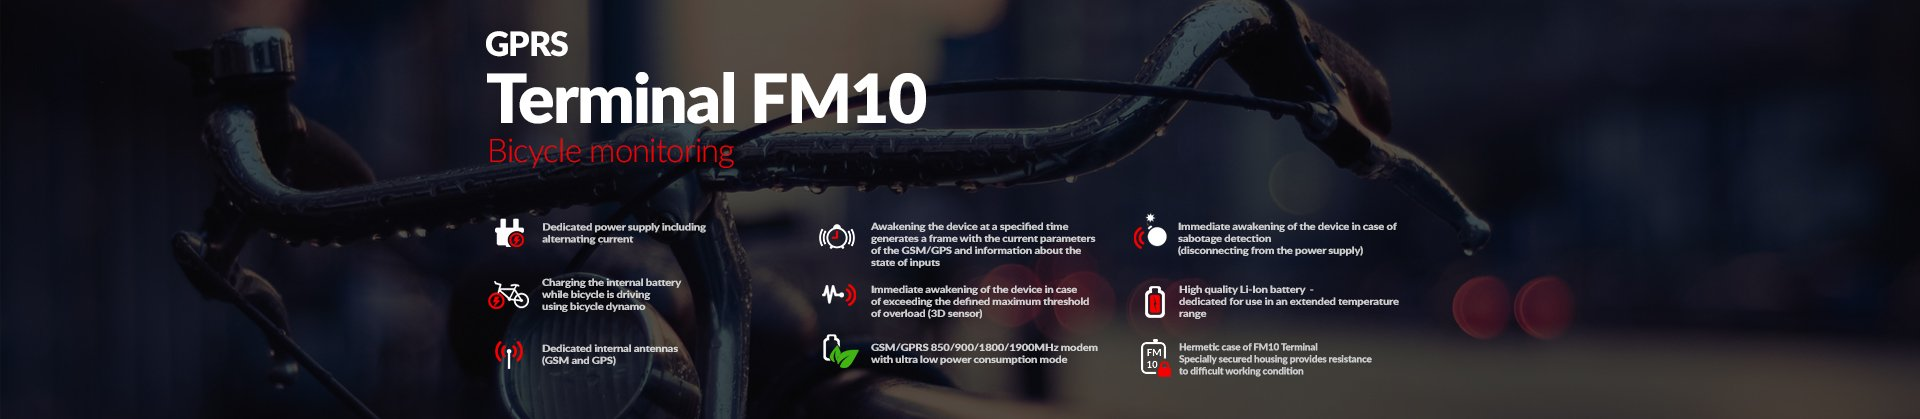 GPRS Terminal FM10 - monitoring bicycles